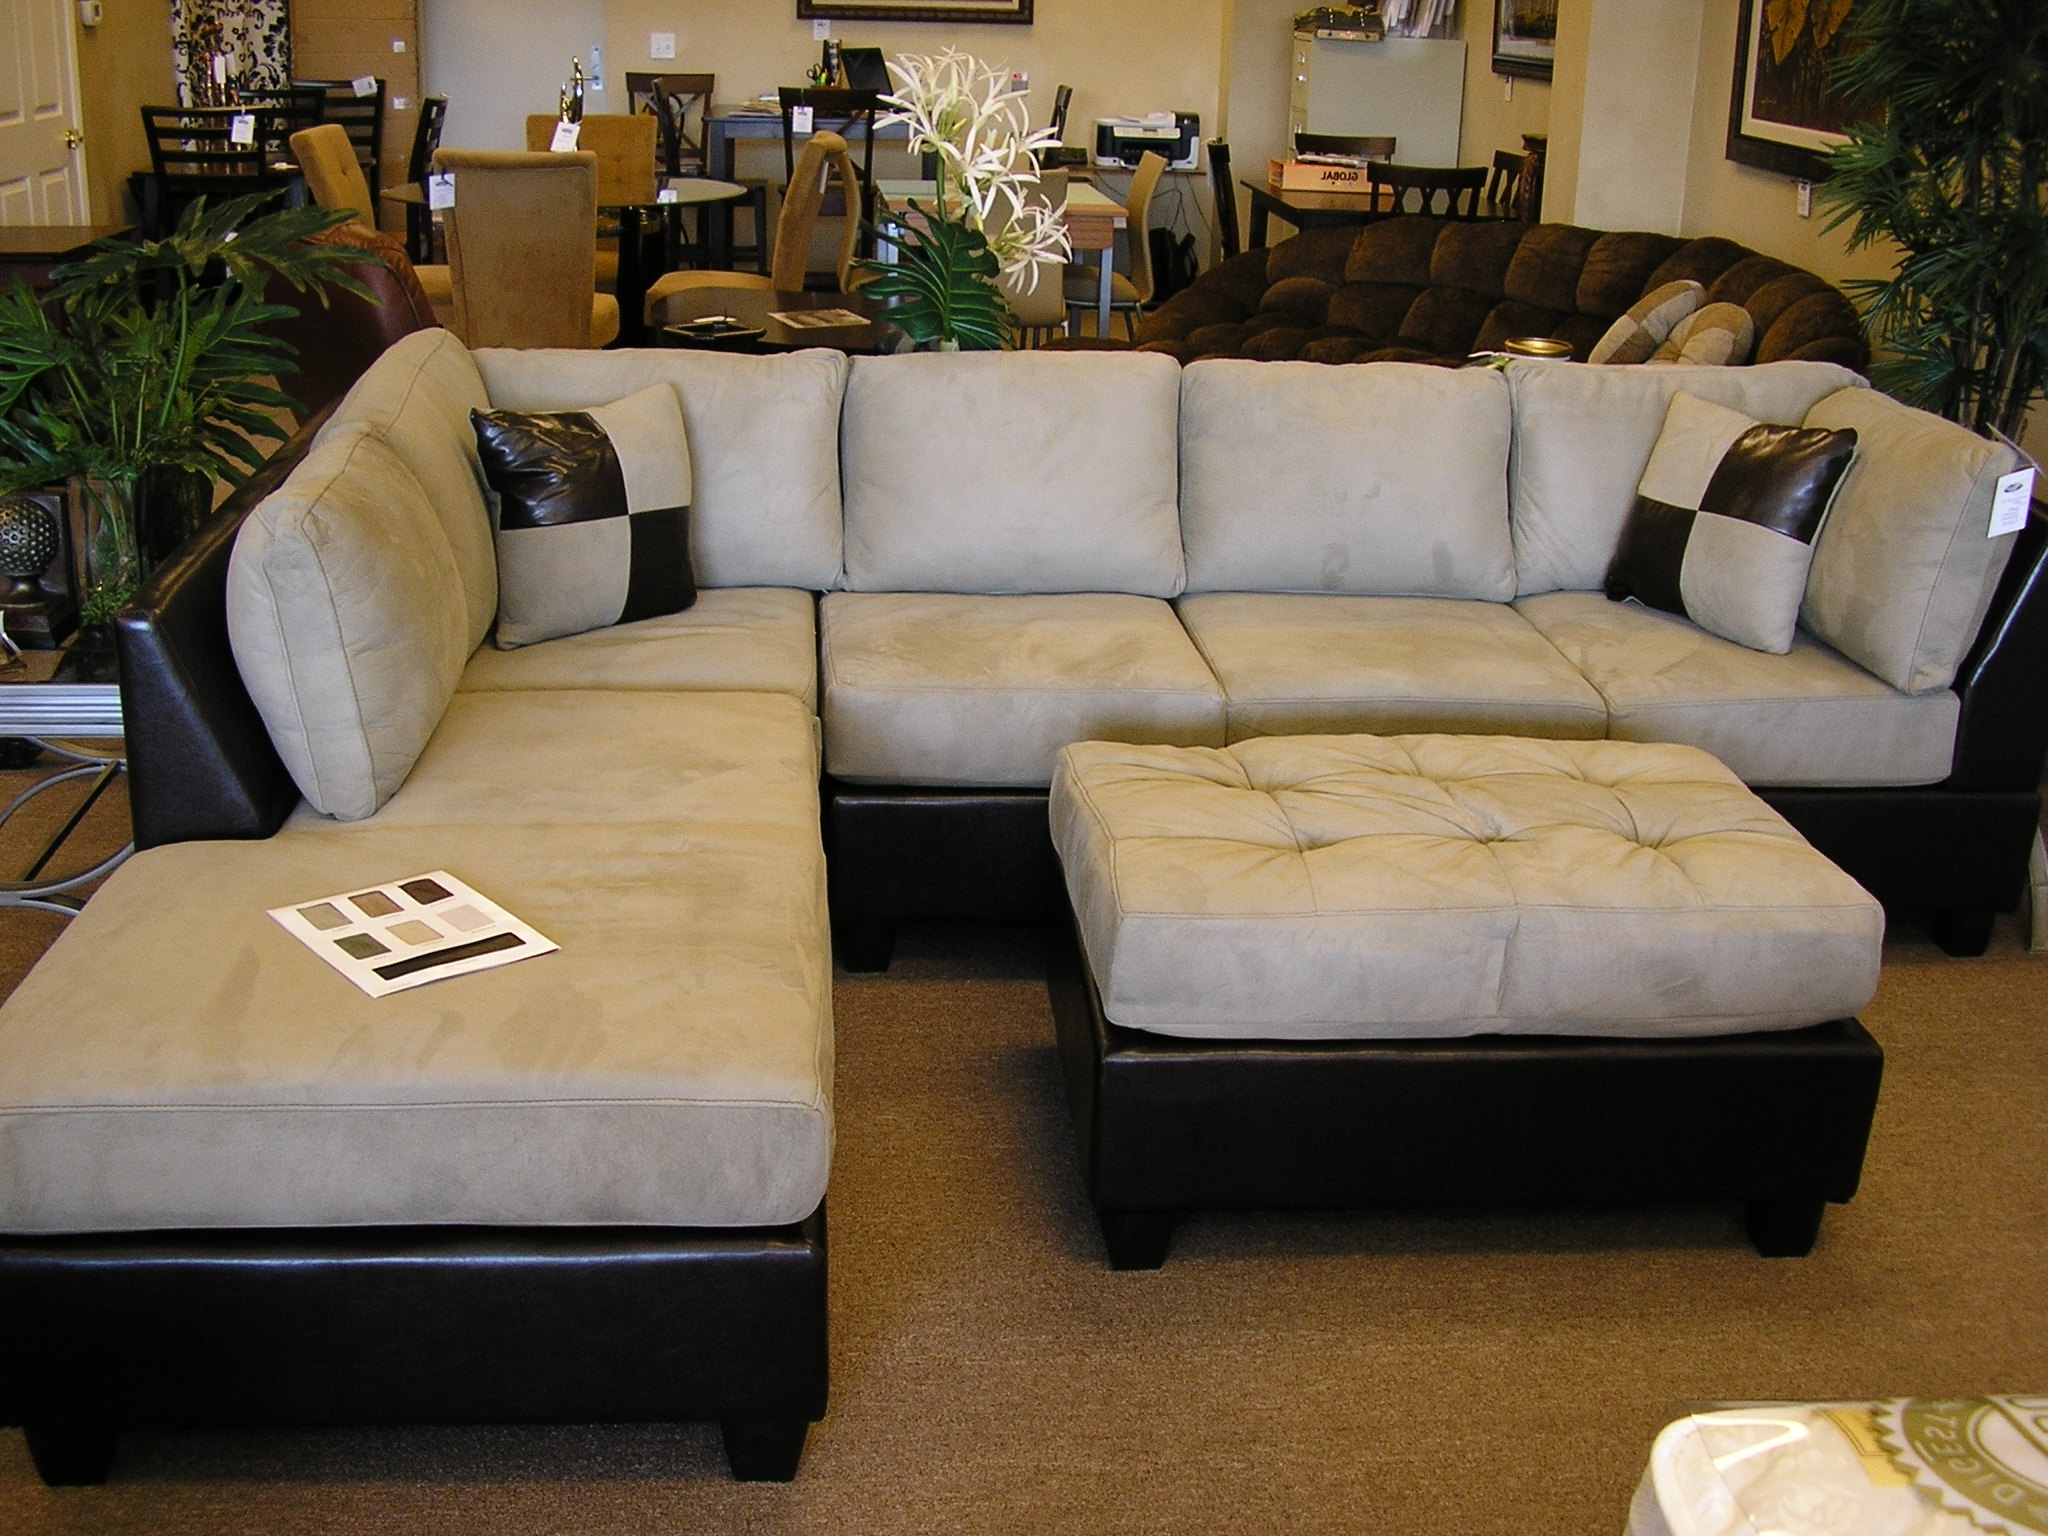 Fashionable Grand Rapids Mi Sectional Sofas With Regard To Furniture: Inspiring Interior Furniture Ideas With Talsma (View 3 of 15)